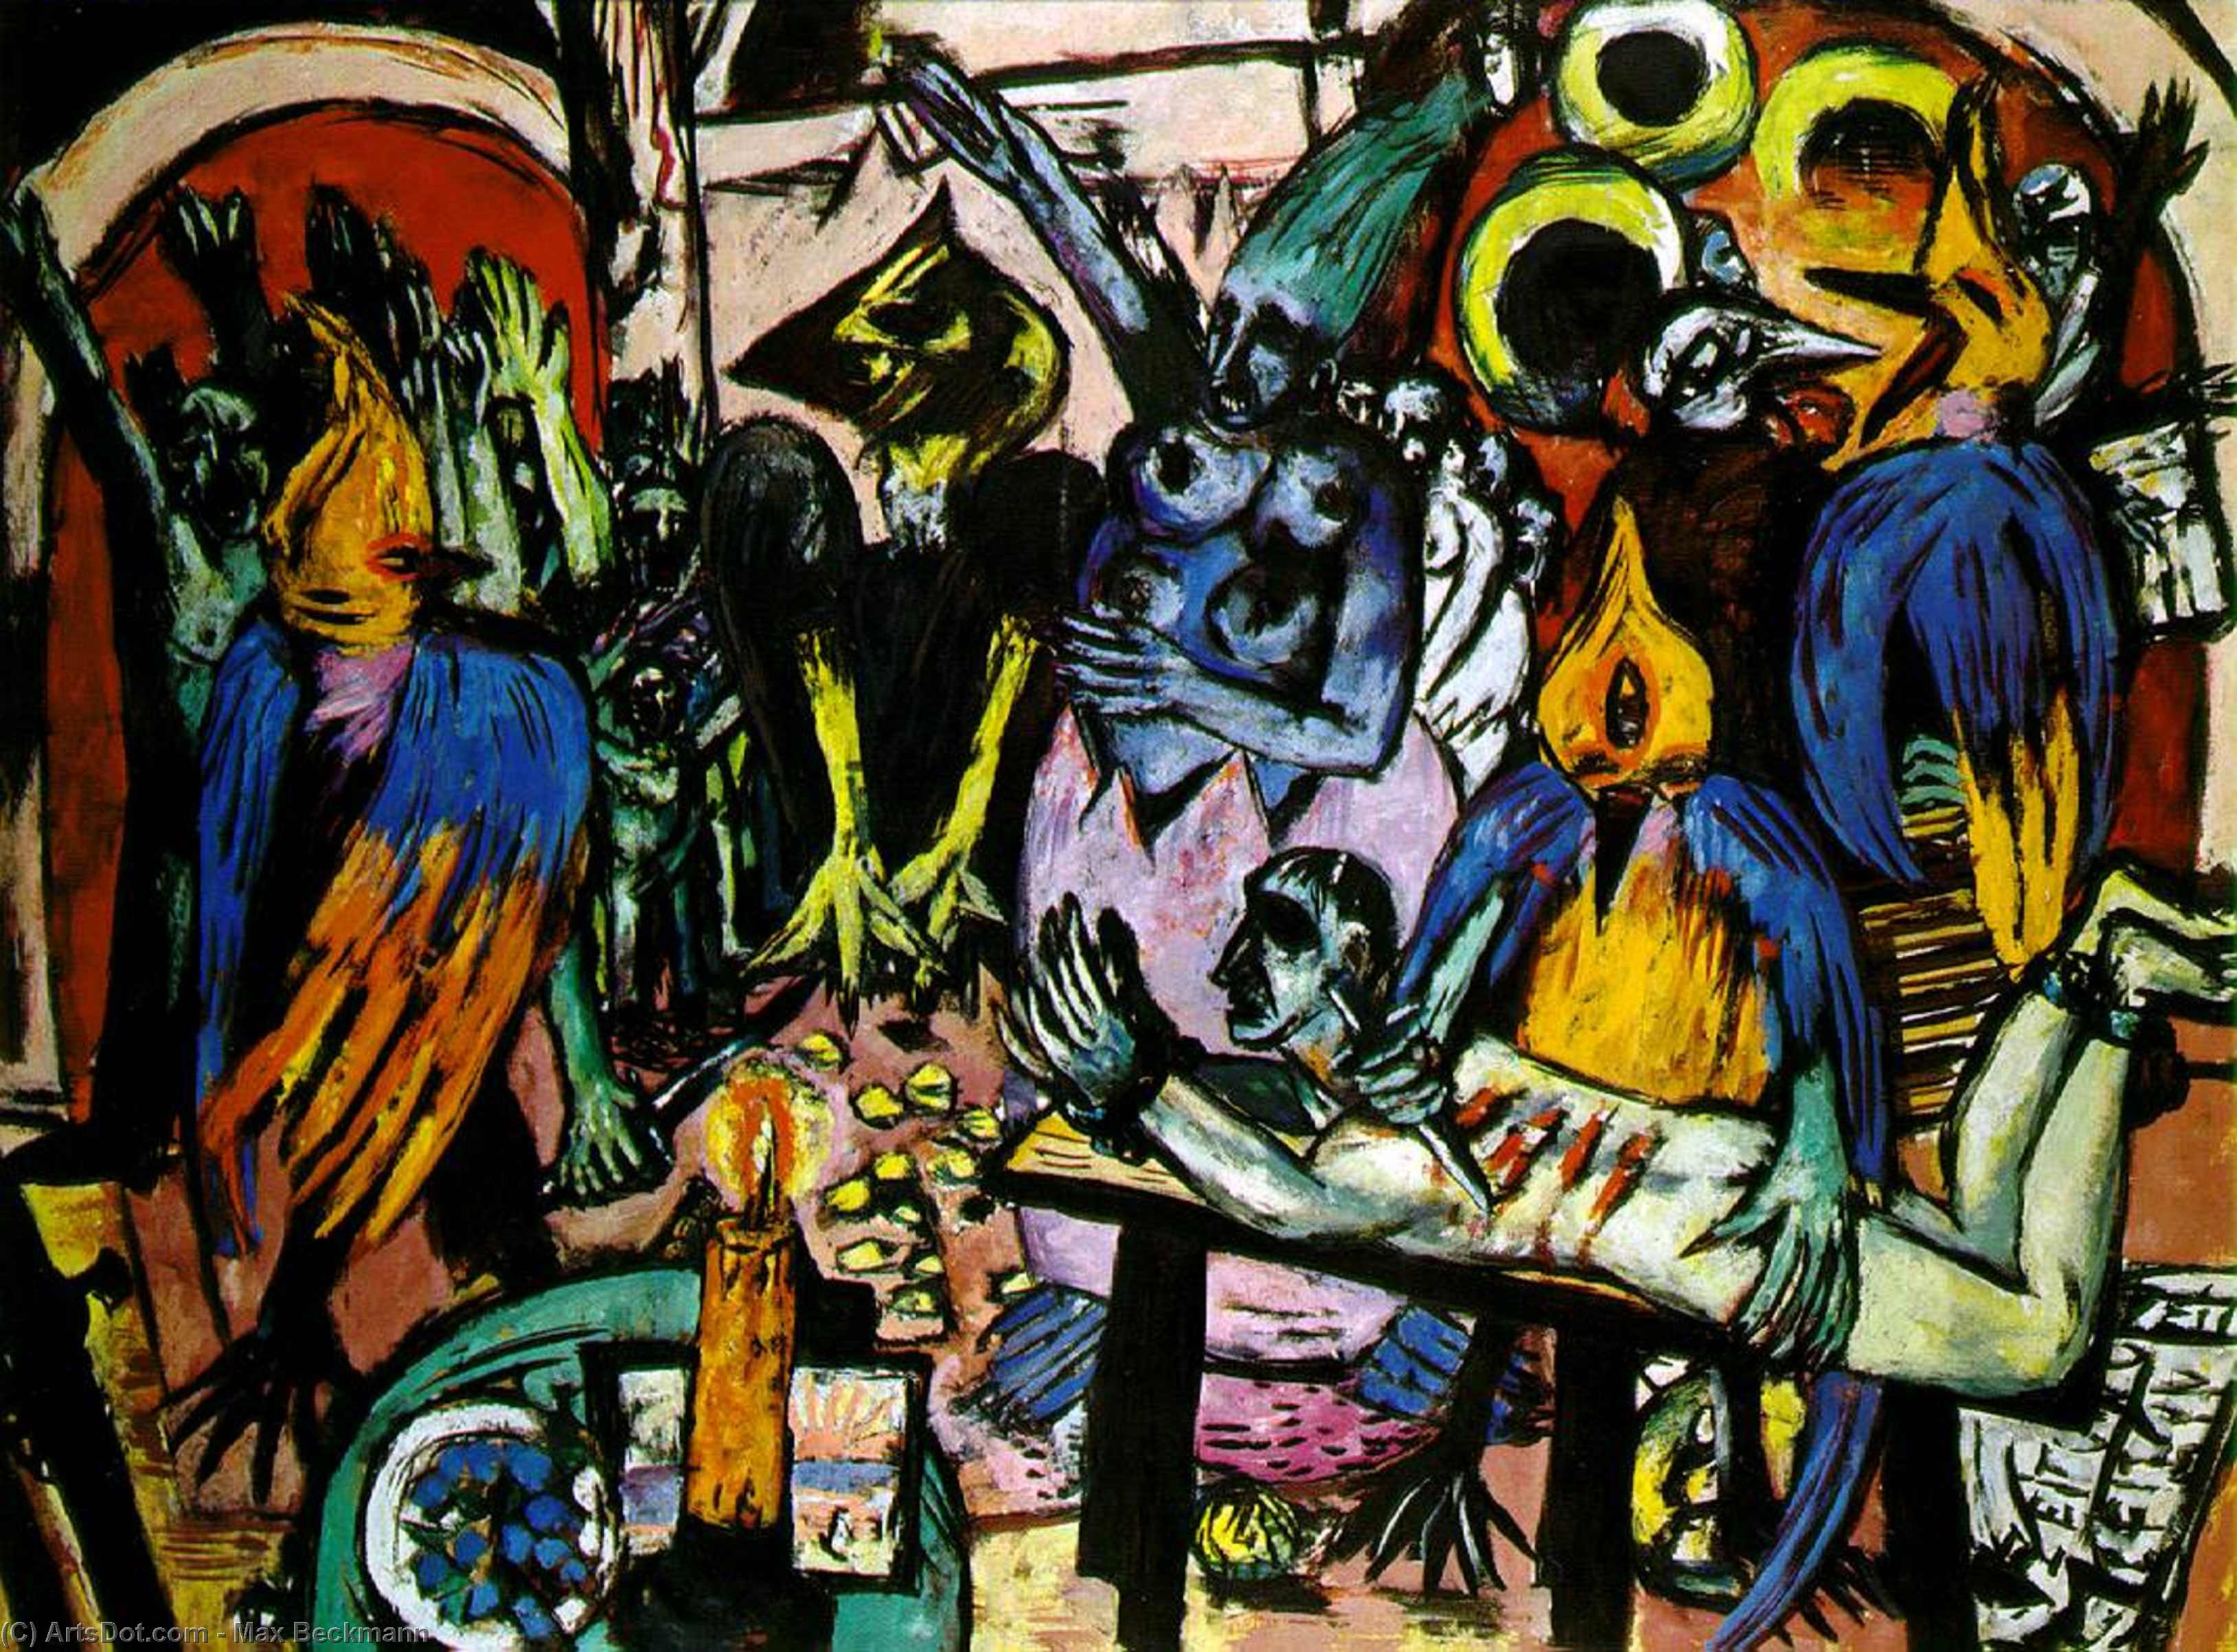 Wikioo.org - The Encyclopedia of Fine Arts - Painting, Artwork by Max Beckmann - Bird's hell